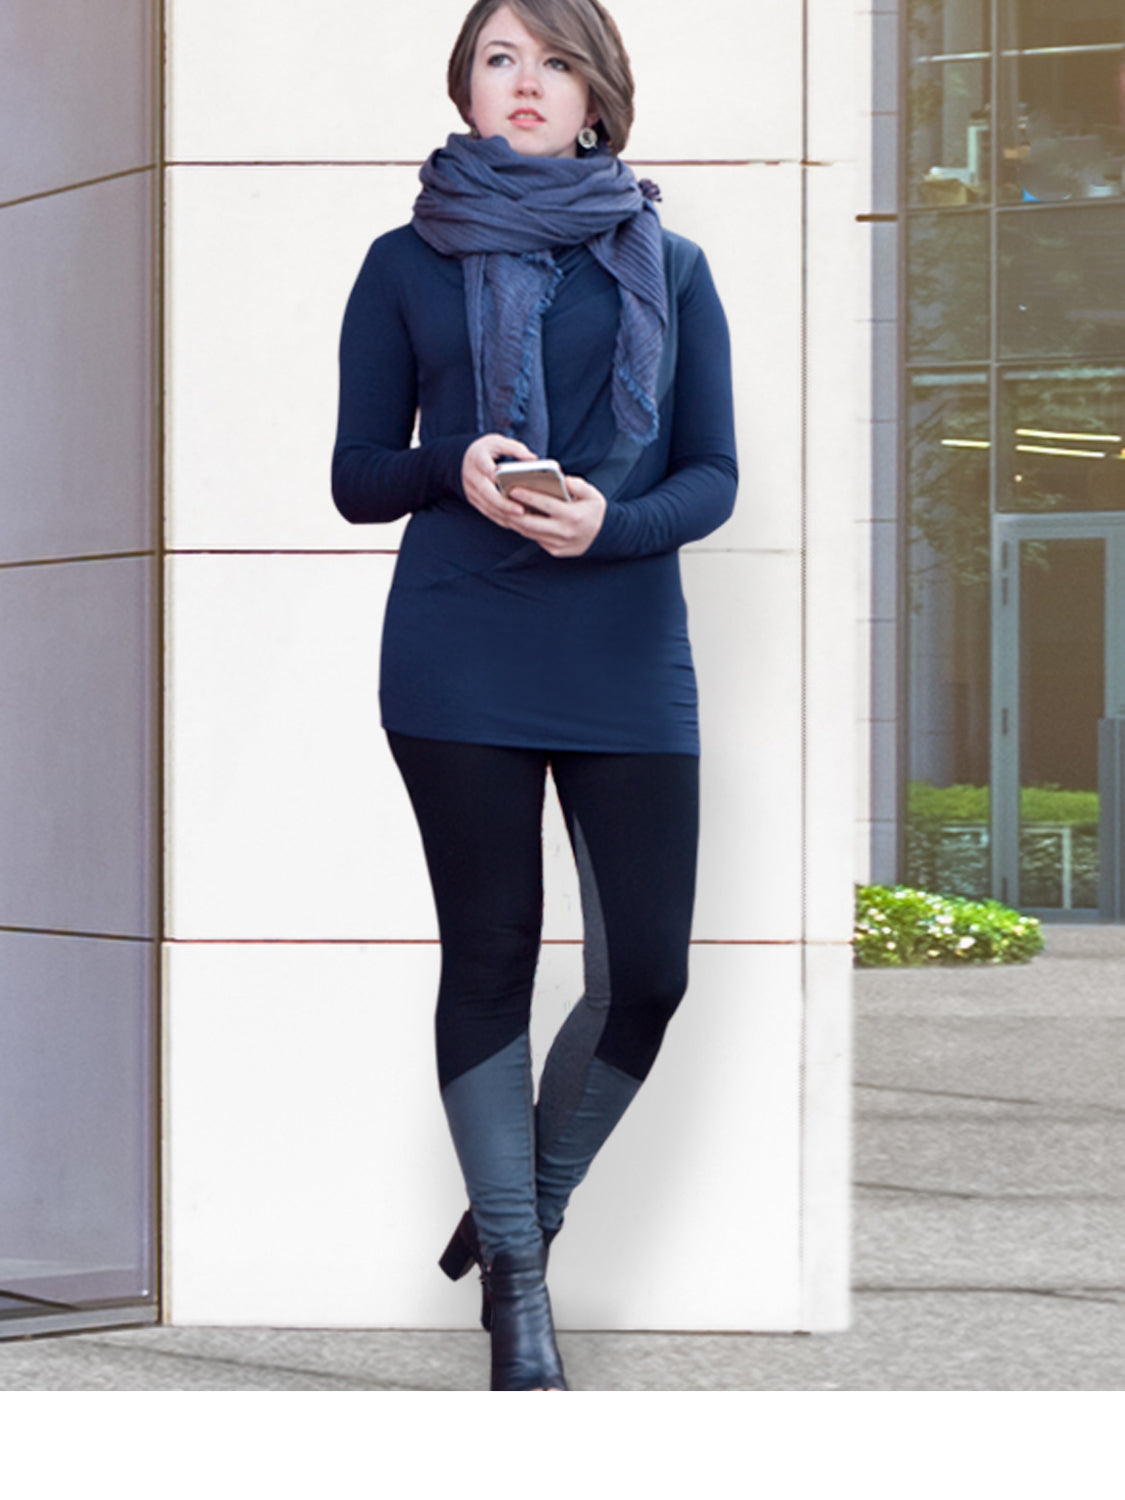 Inventory Sale: JUNO – Extra Long Eco-Friendly Leggings (Black & Burgundy)